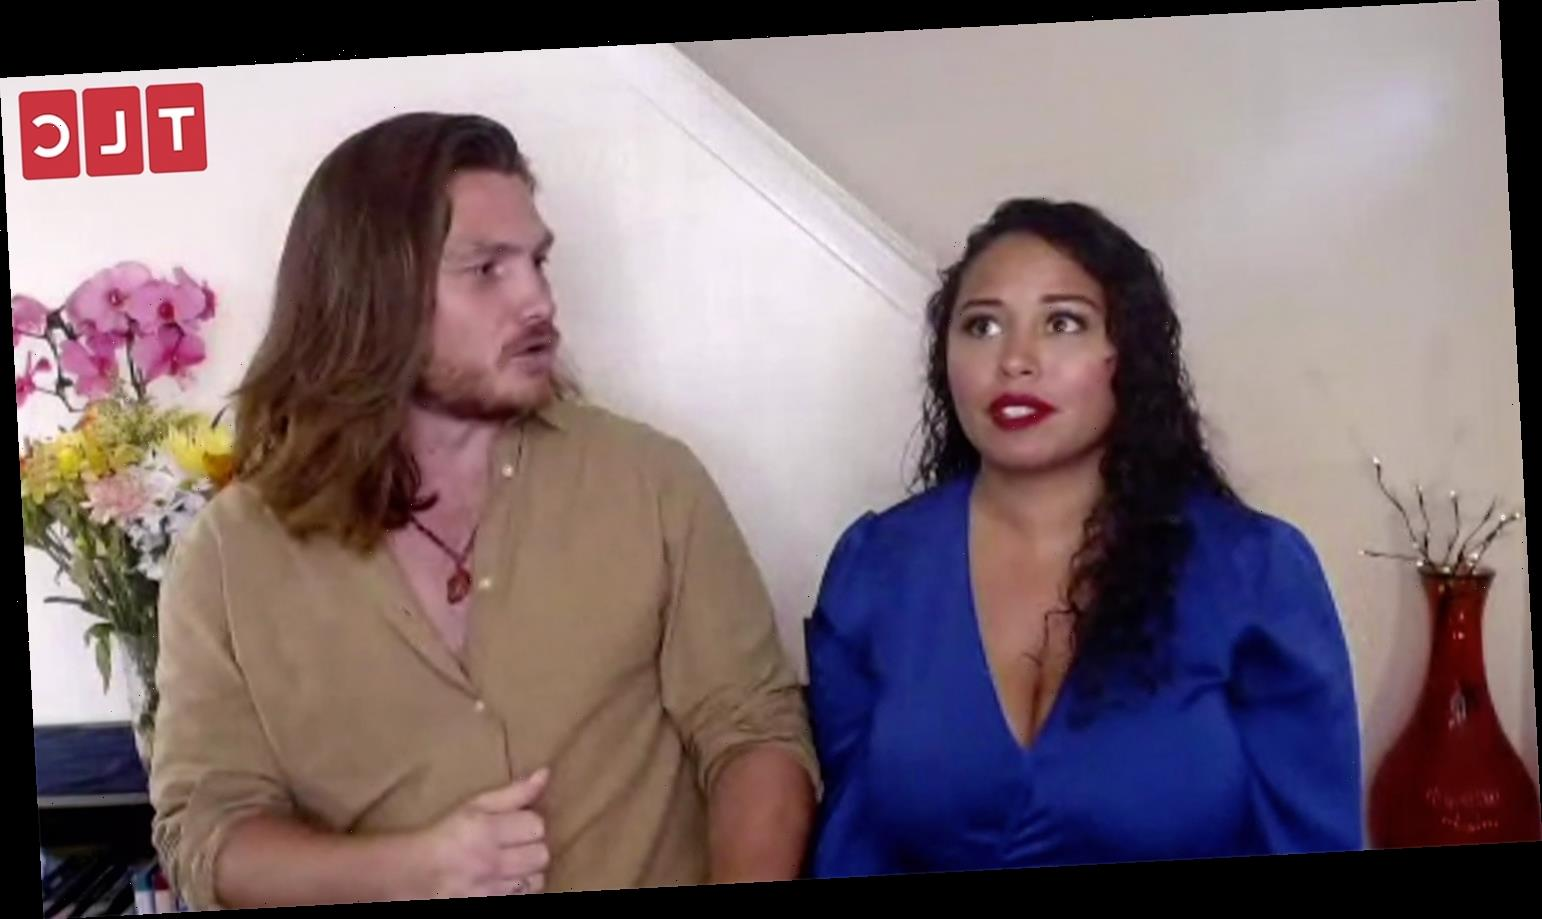 90 Day Fiancé's Tania and Syngin Argue About His Drinking in Happily Ever After Sneak Peek